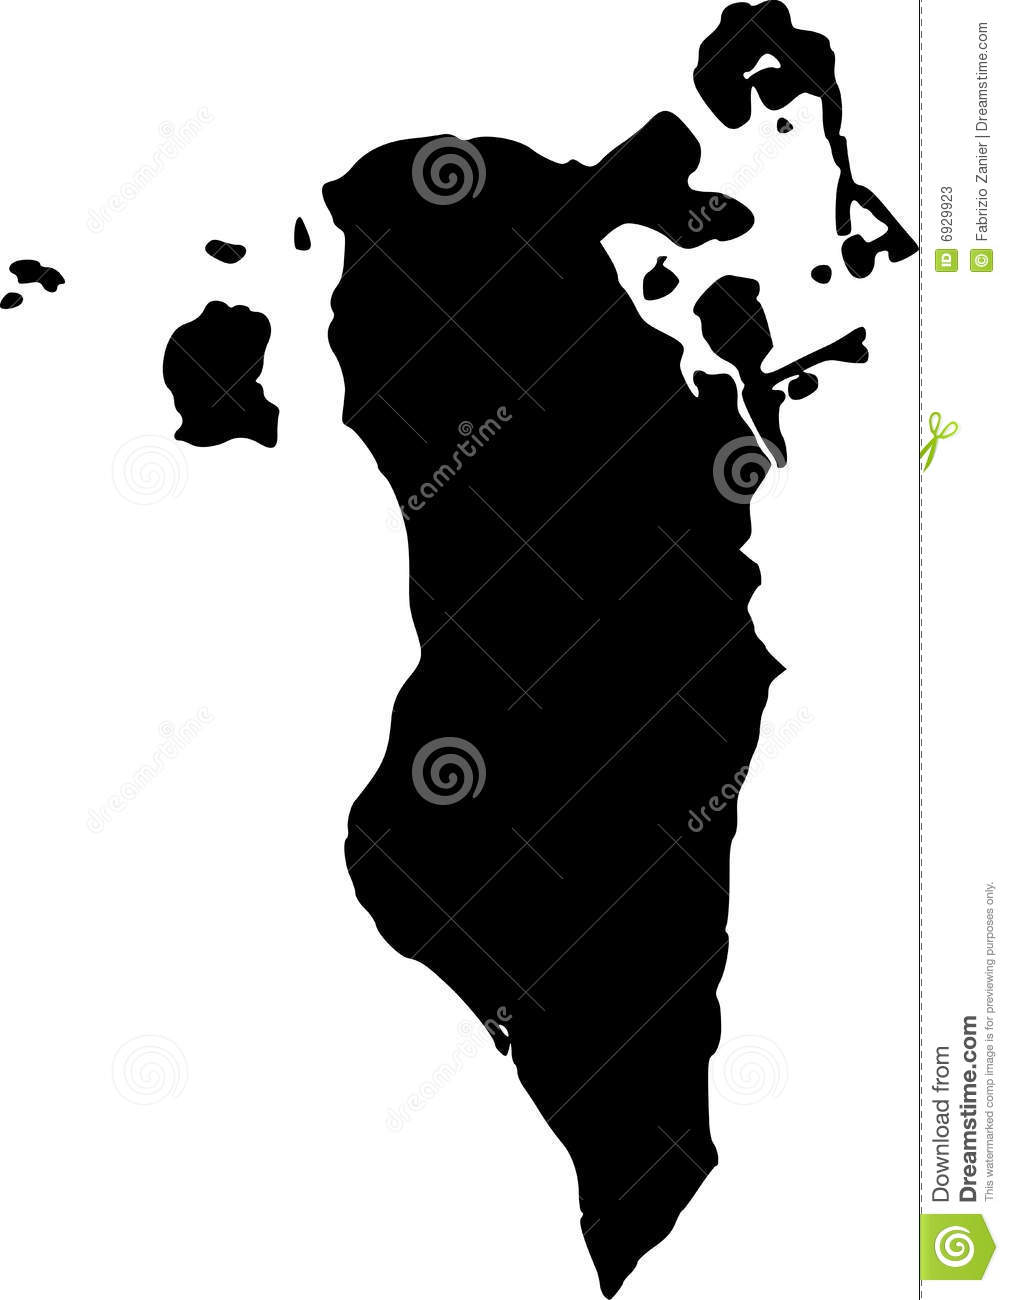 Vector Map Of Bahrain Stock Vector Illustration Of Great - Bahrain map vector